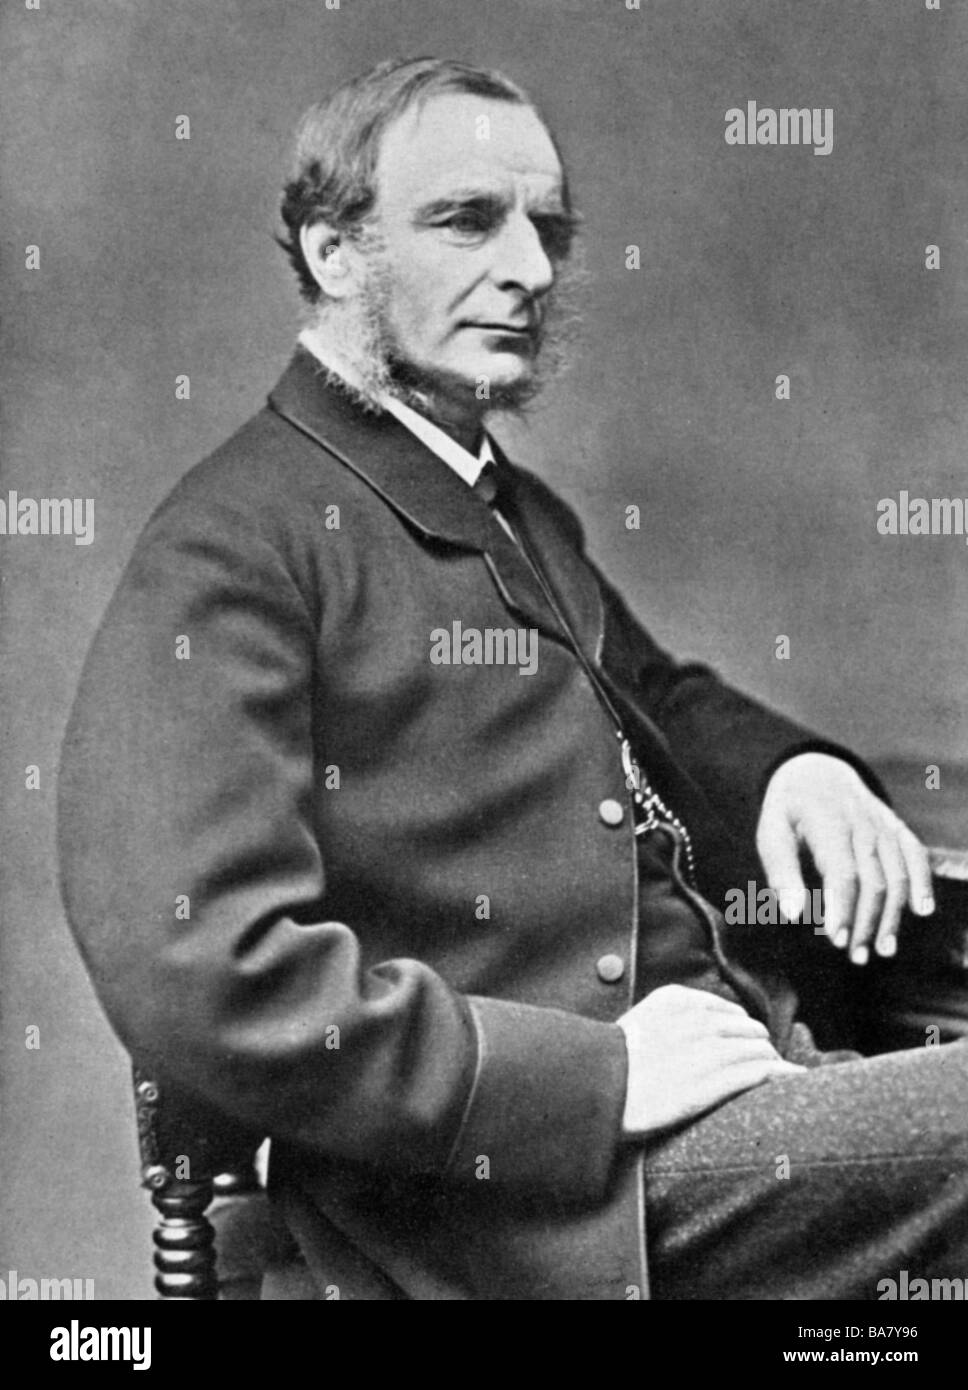 Kingsley, Charles, 12.6.1819 - 23.1.1875, English author / writer, half length, photo by Draycott, Birmingham, Additional - Stock Image